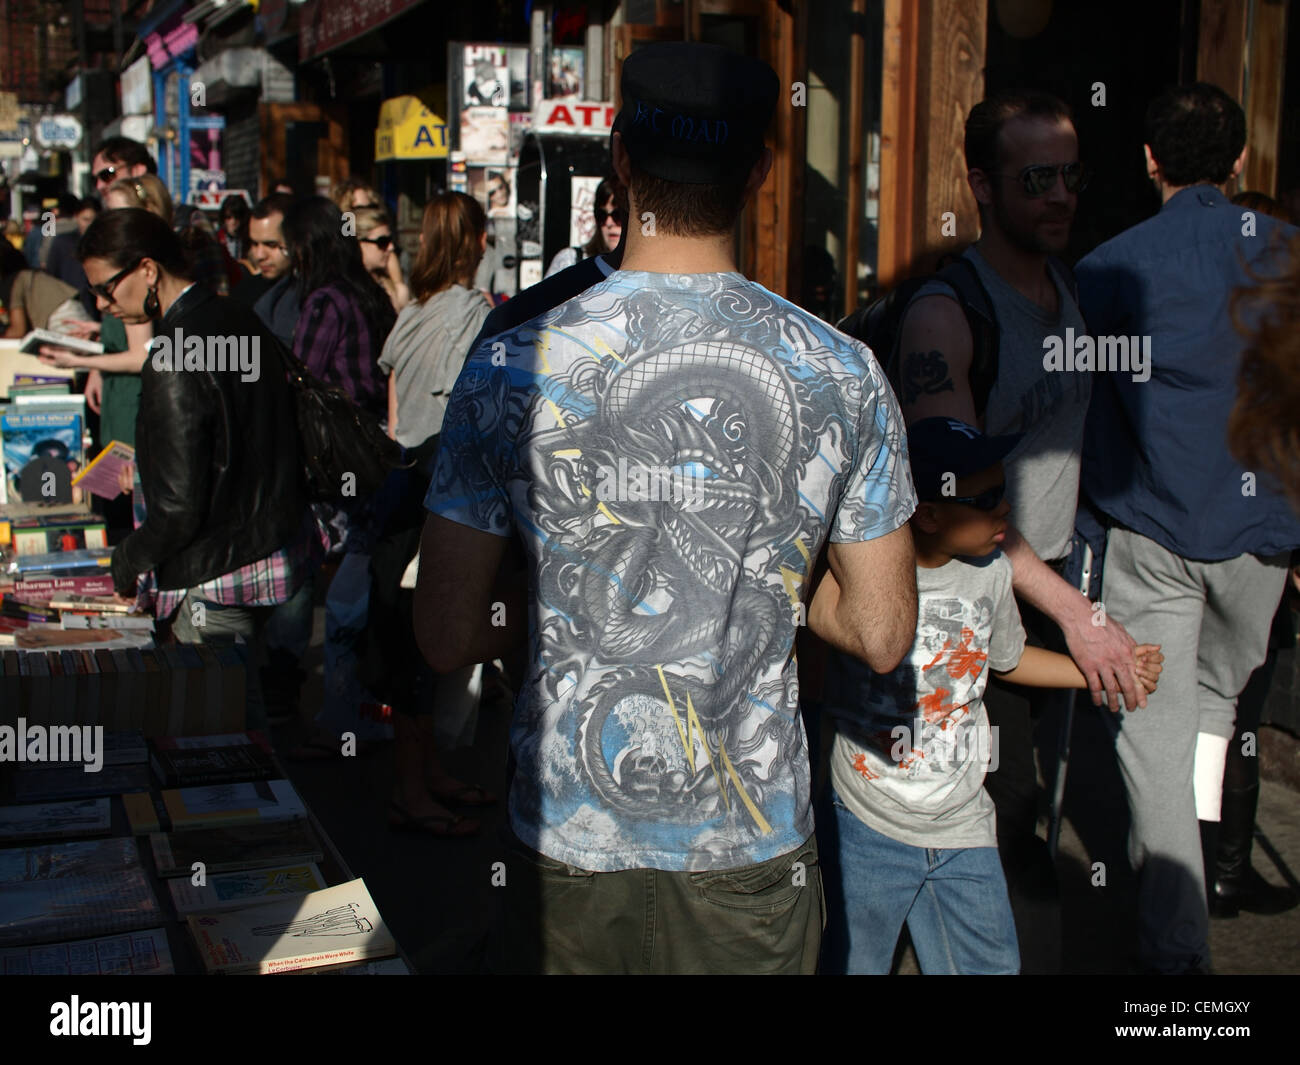 0affd871a Man wearing colorful t-shirt in crowd on street, Brooklyn, New York -